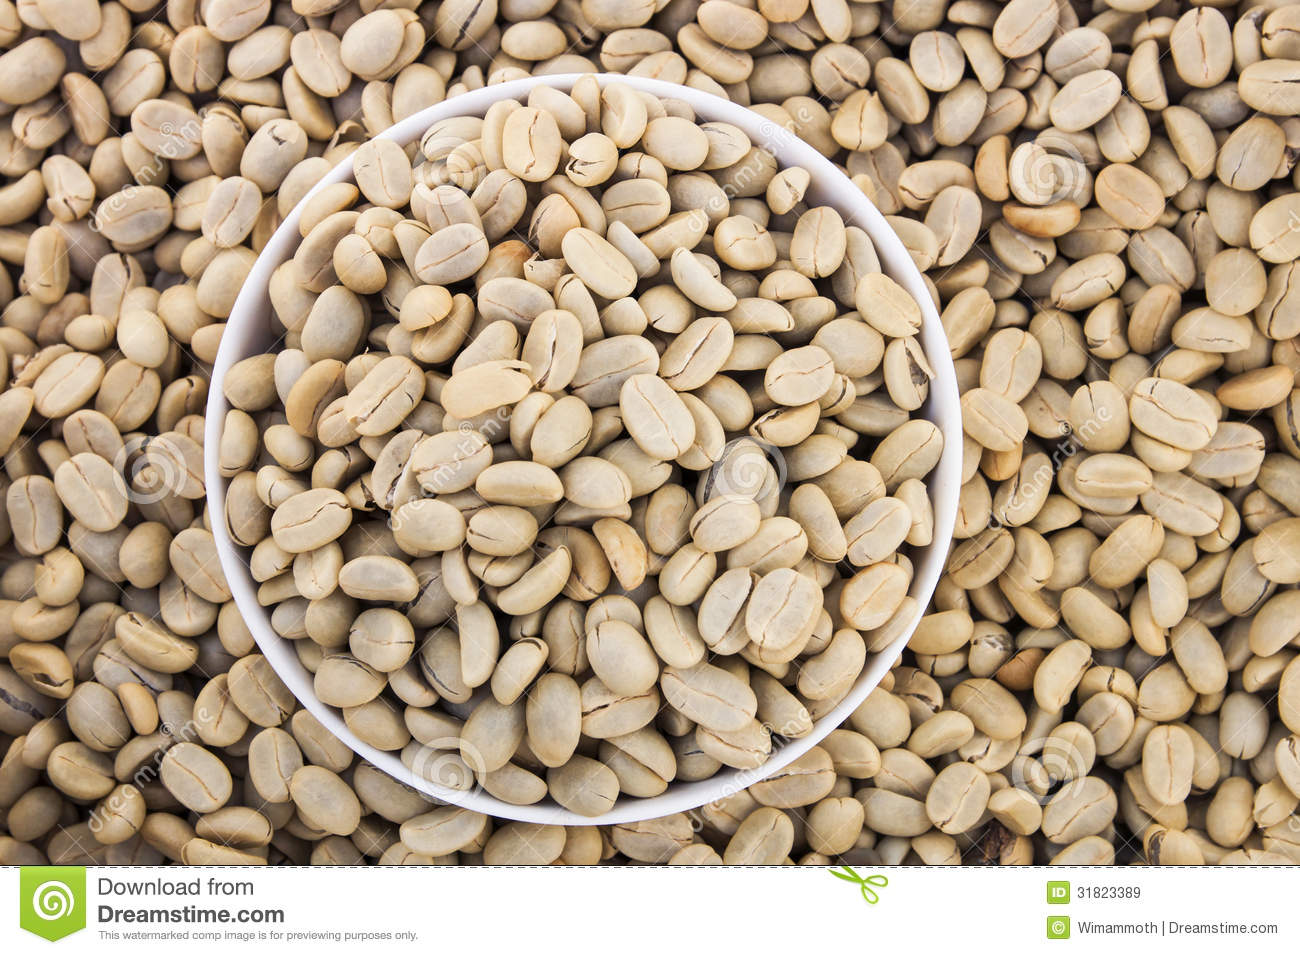 Unroasted Organic Arabica Coffee Beans Unroasted Green Coffee Beans Royalty Free Stock Images